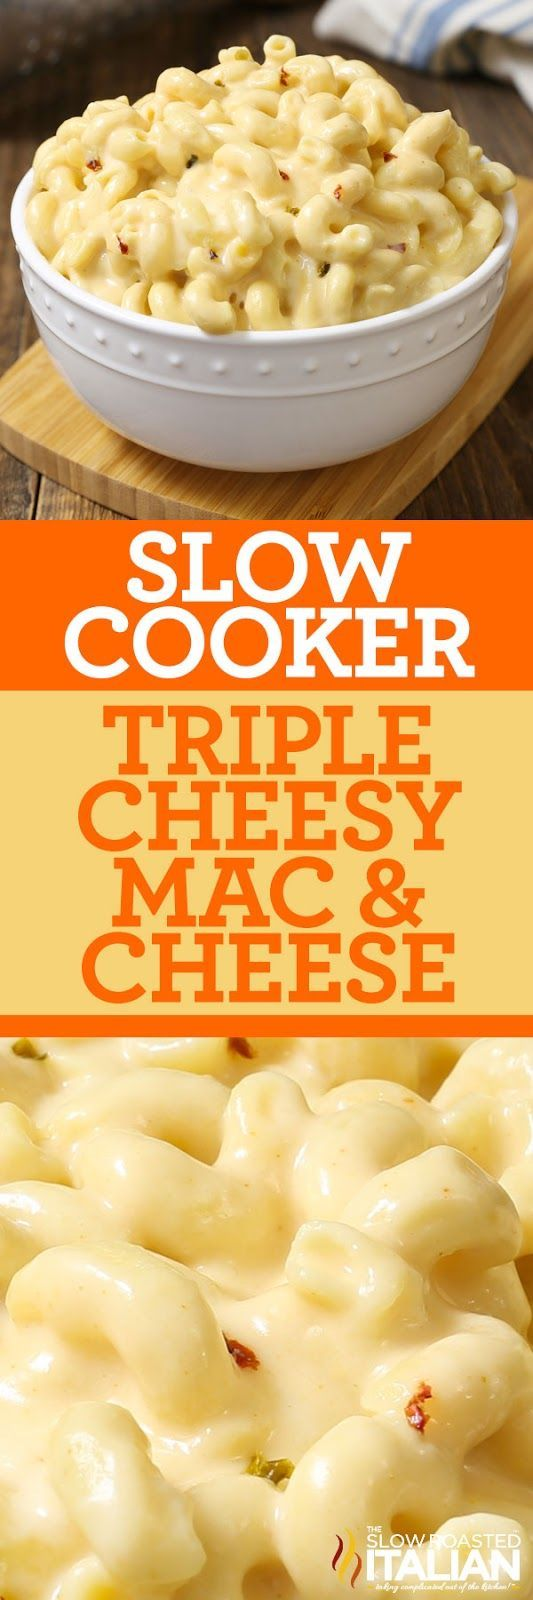 Slow Cooker Triple Cheesy Mac and Cheese (With Video and Giveaway)  is a simple recipe that you can toss together in just 5 minutes. It is truly one of our favorite recipes in our book! It's pure comfort in a bowl, with perfectly tender corkscrew pasta with twists and ridges that capture the luscious pepper Jack and cheddar cheese sauce. It has just enough heat to wake up your taste buds.